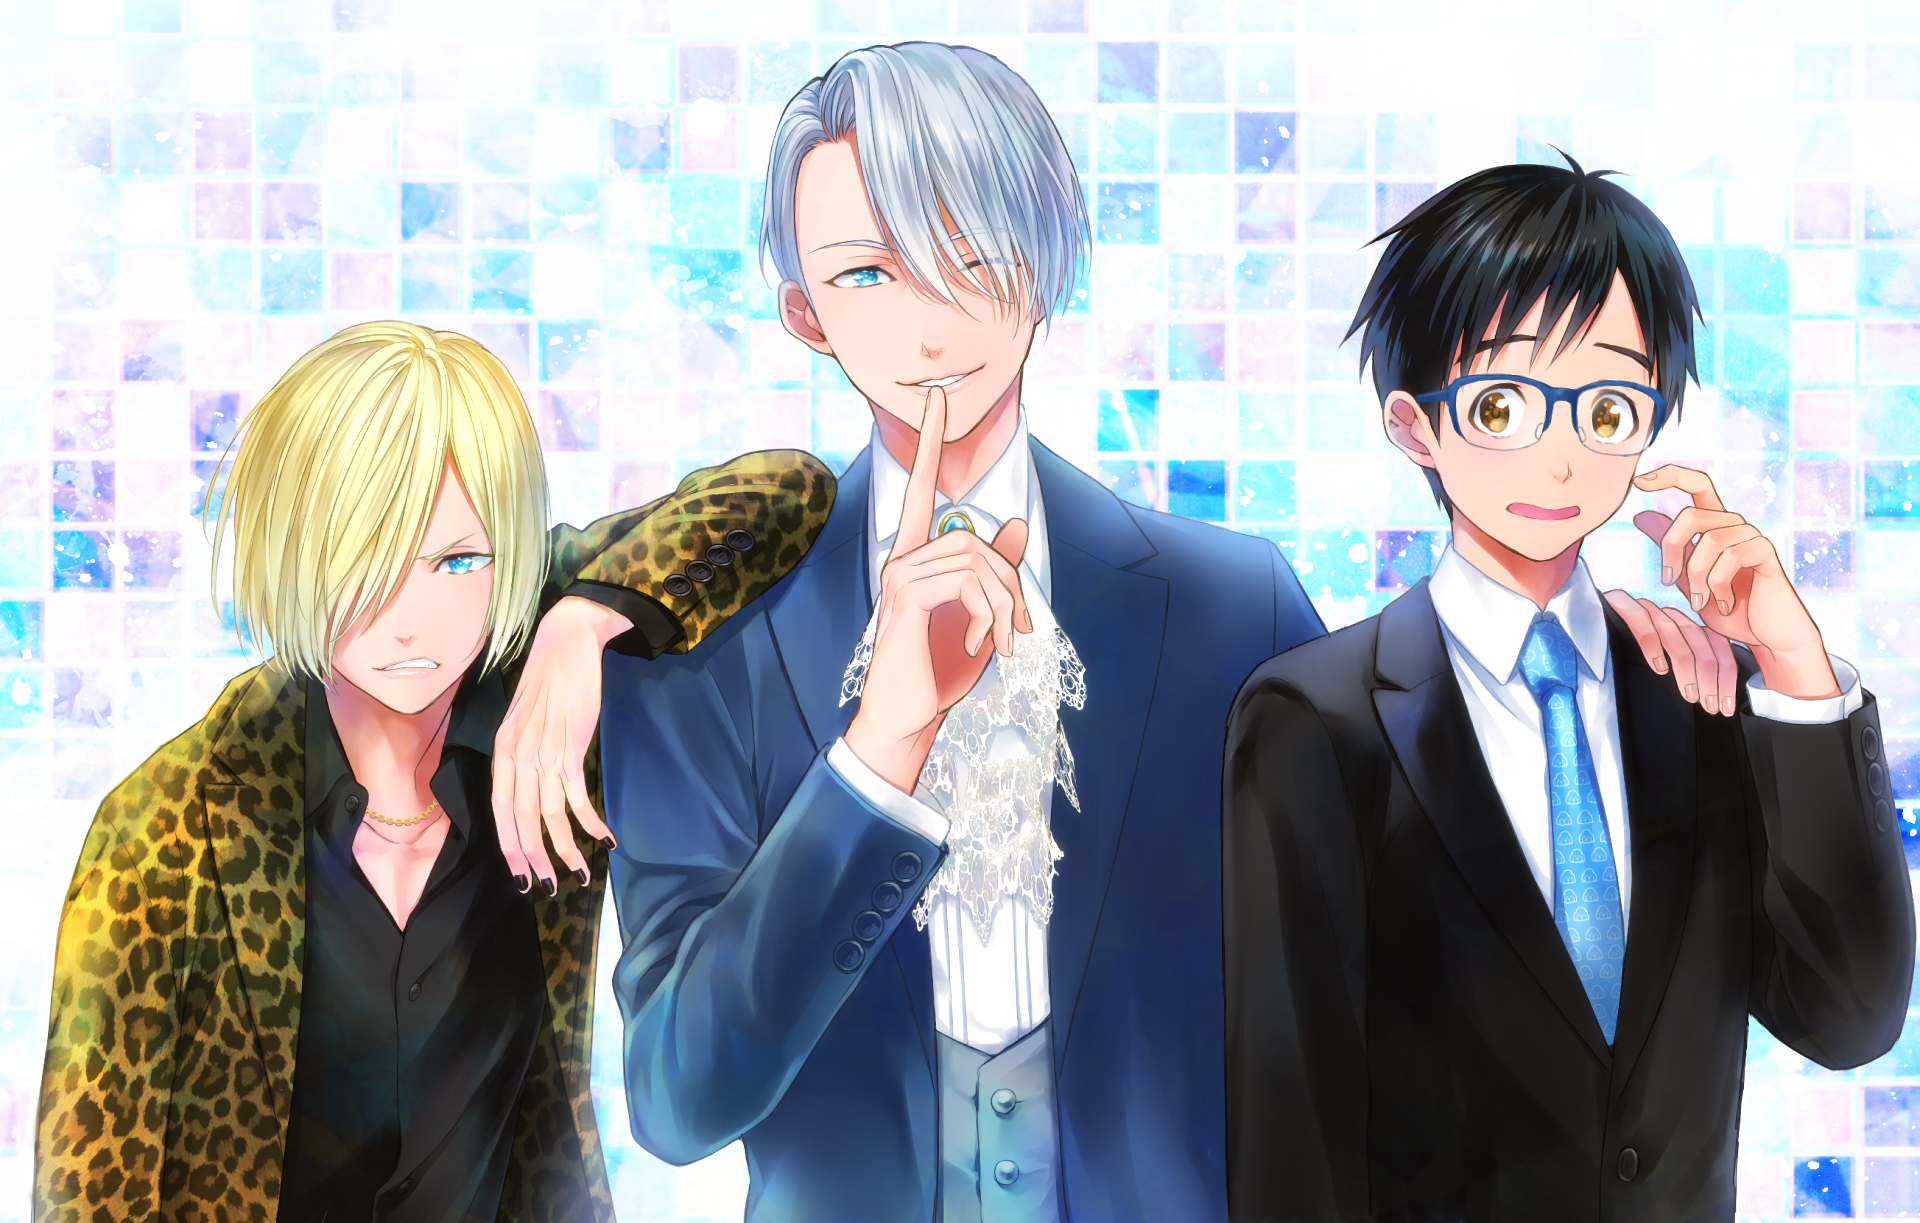 Anime Yuri On Ice Victor Nikiforov Yuuri Katsuki Yuri Plisetsky Wallpaper Anime Anime Wallpaper Yuri On Ice